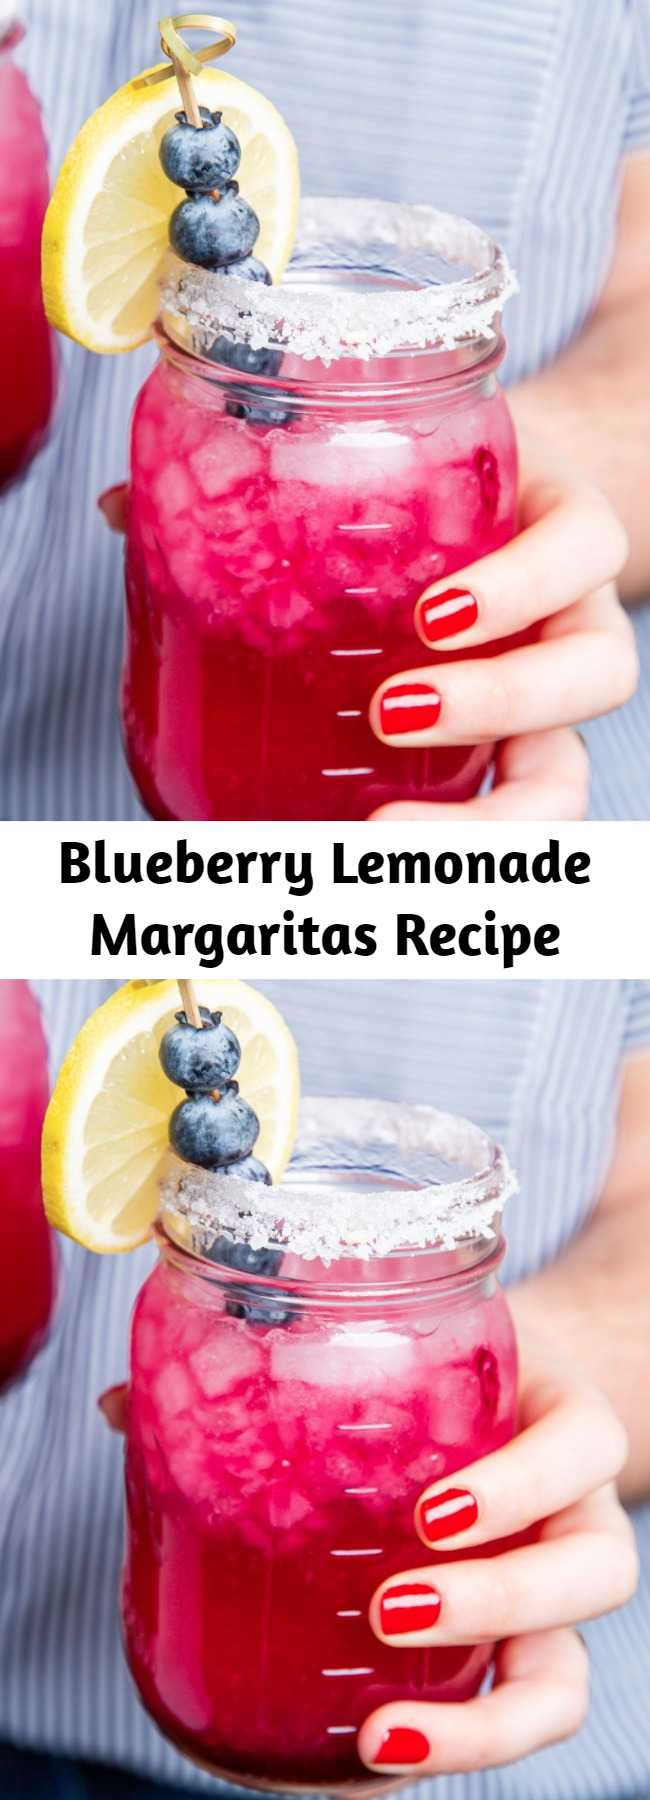 Blueberry Lemonade Margaritas Recipe - Seize the best of summer with these Blueberry Lemonade Margaritas. These refreshing (and beautiful) margaritas start with a homemade blueberry syrup.